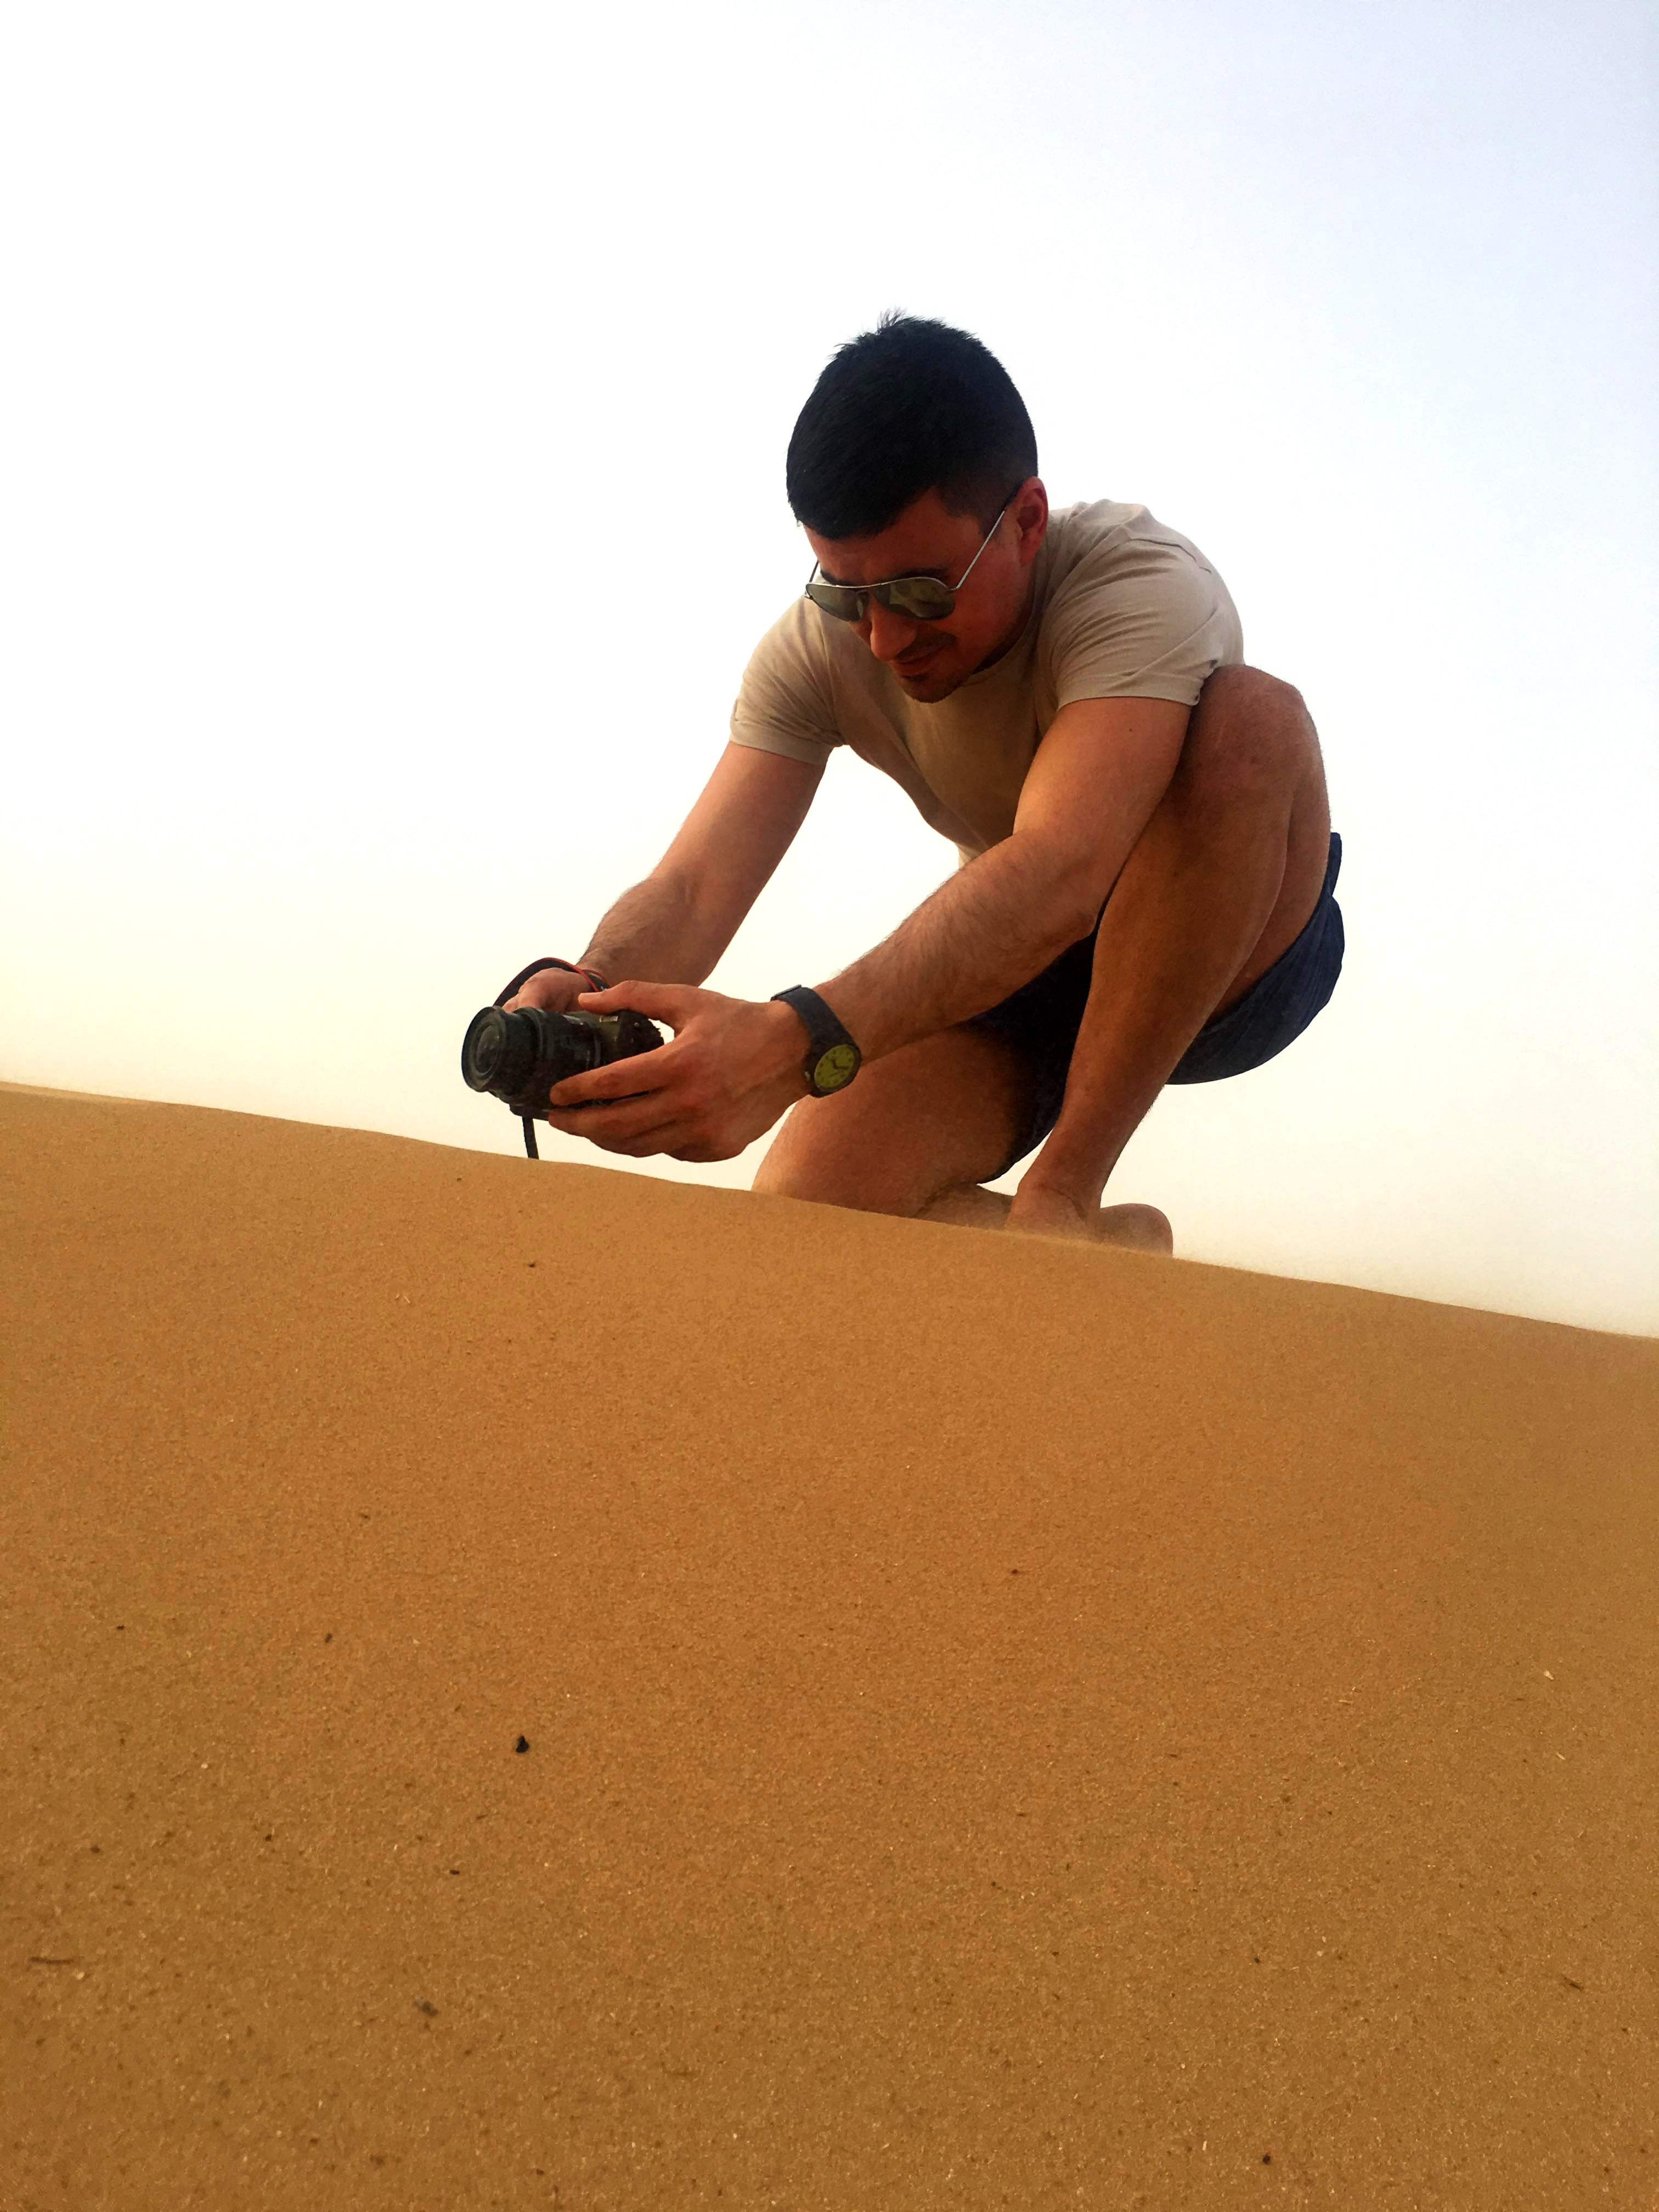 a boy with light colored t-shirt kneeling on a sand dune with a camera in his hands taking a picture